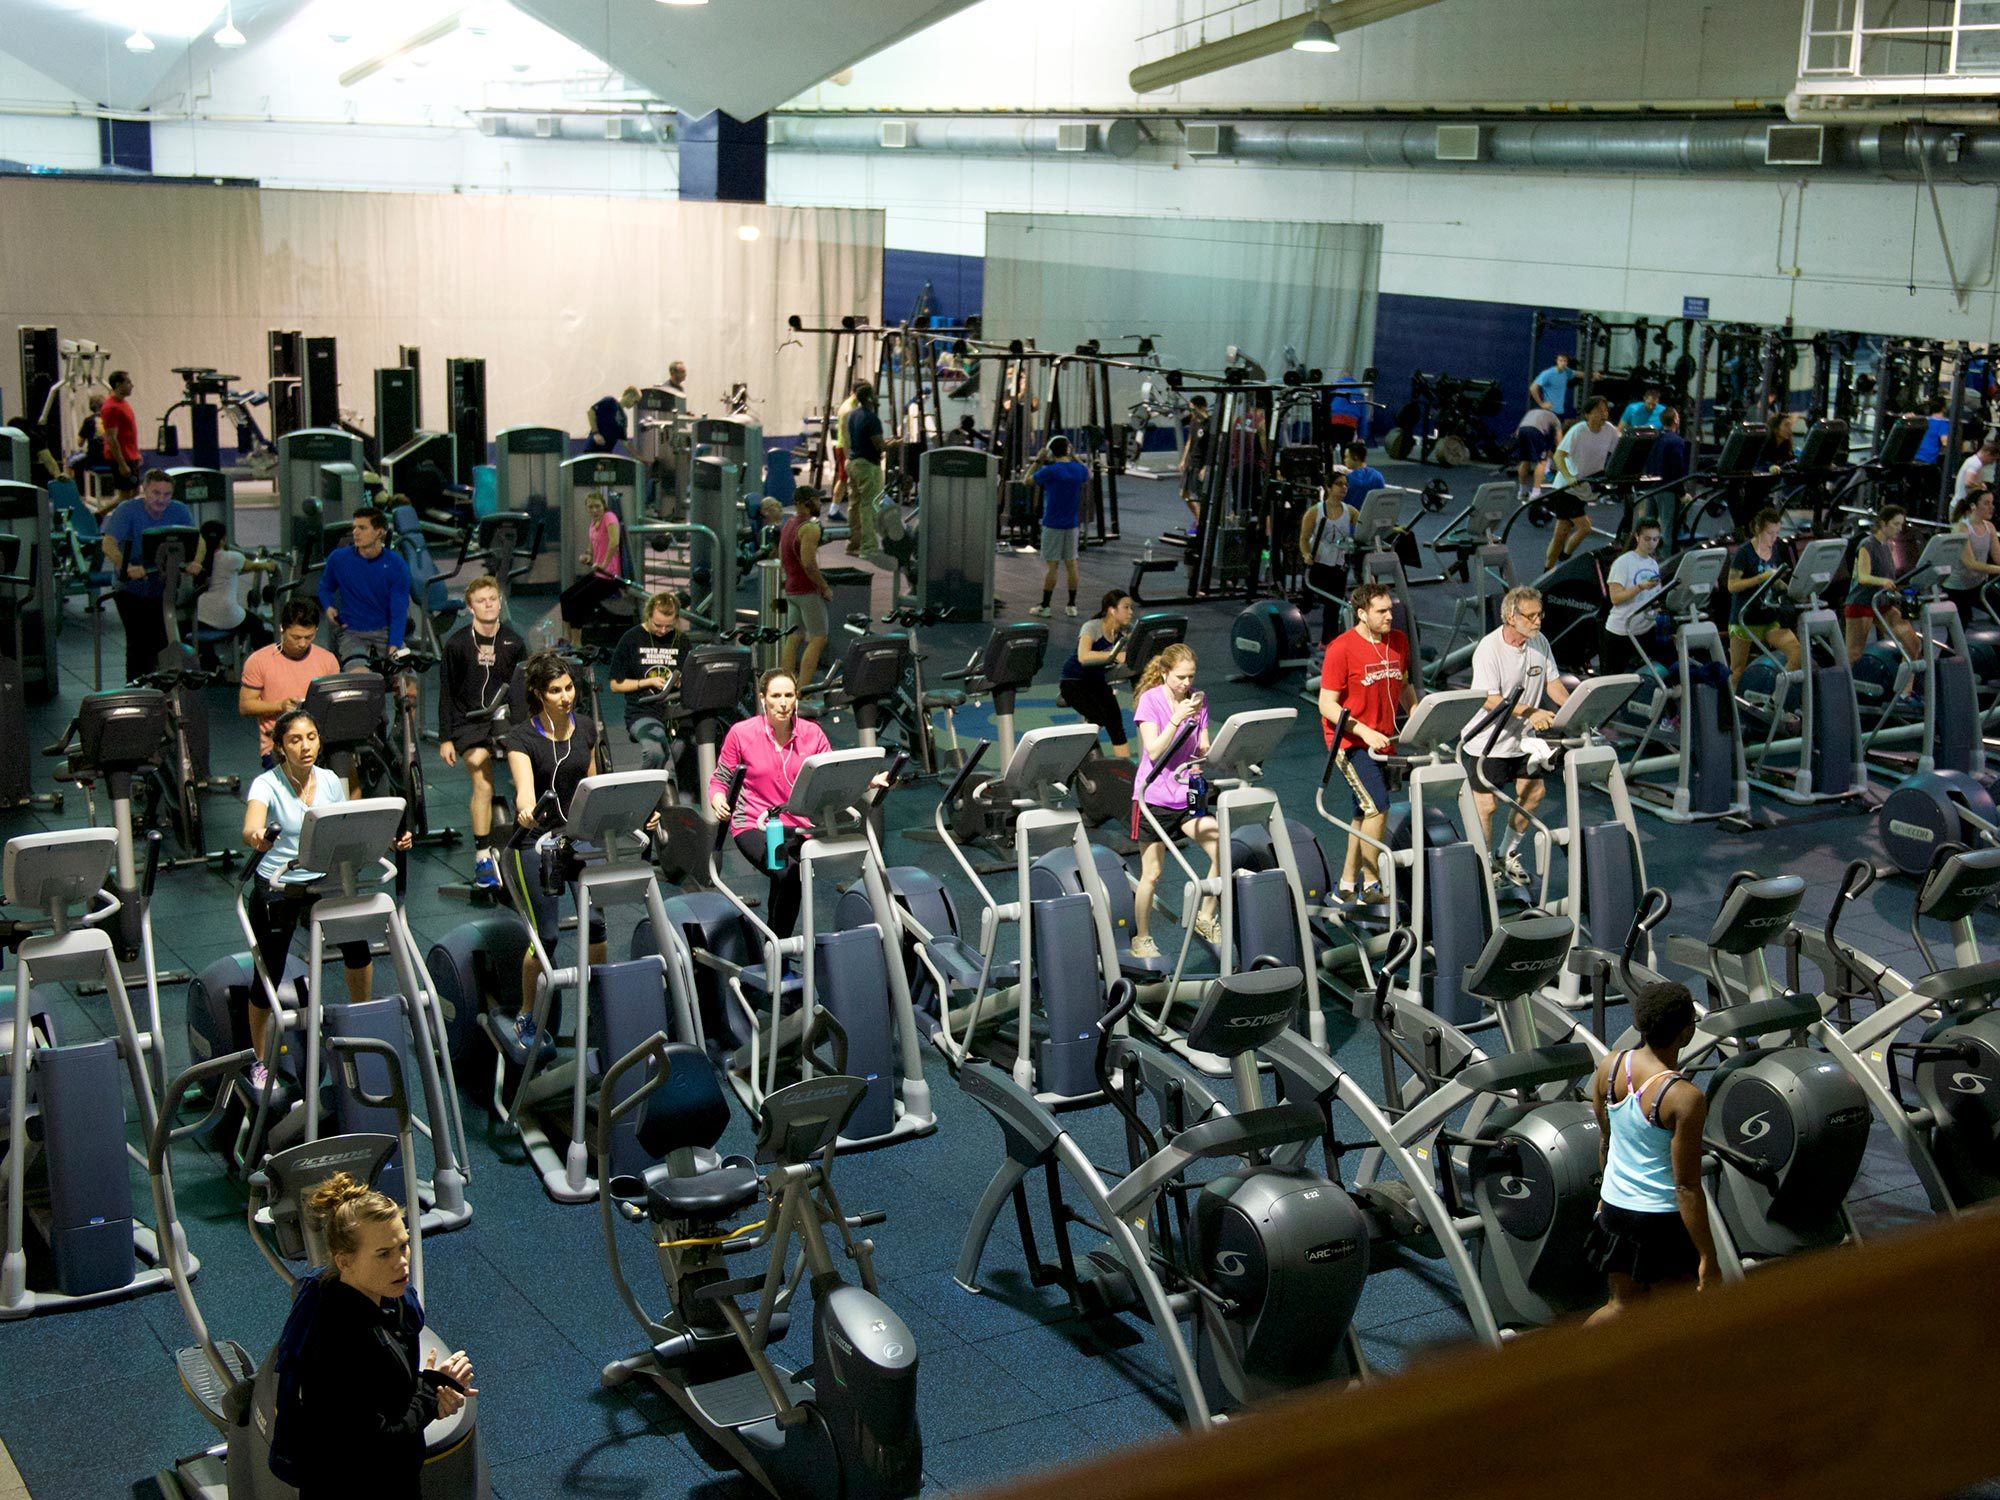 Students, faculty, and staff work out at Yates Field House